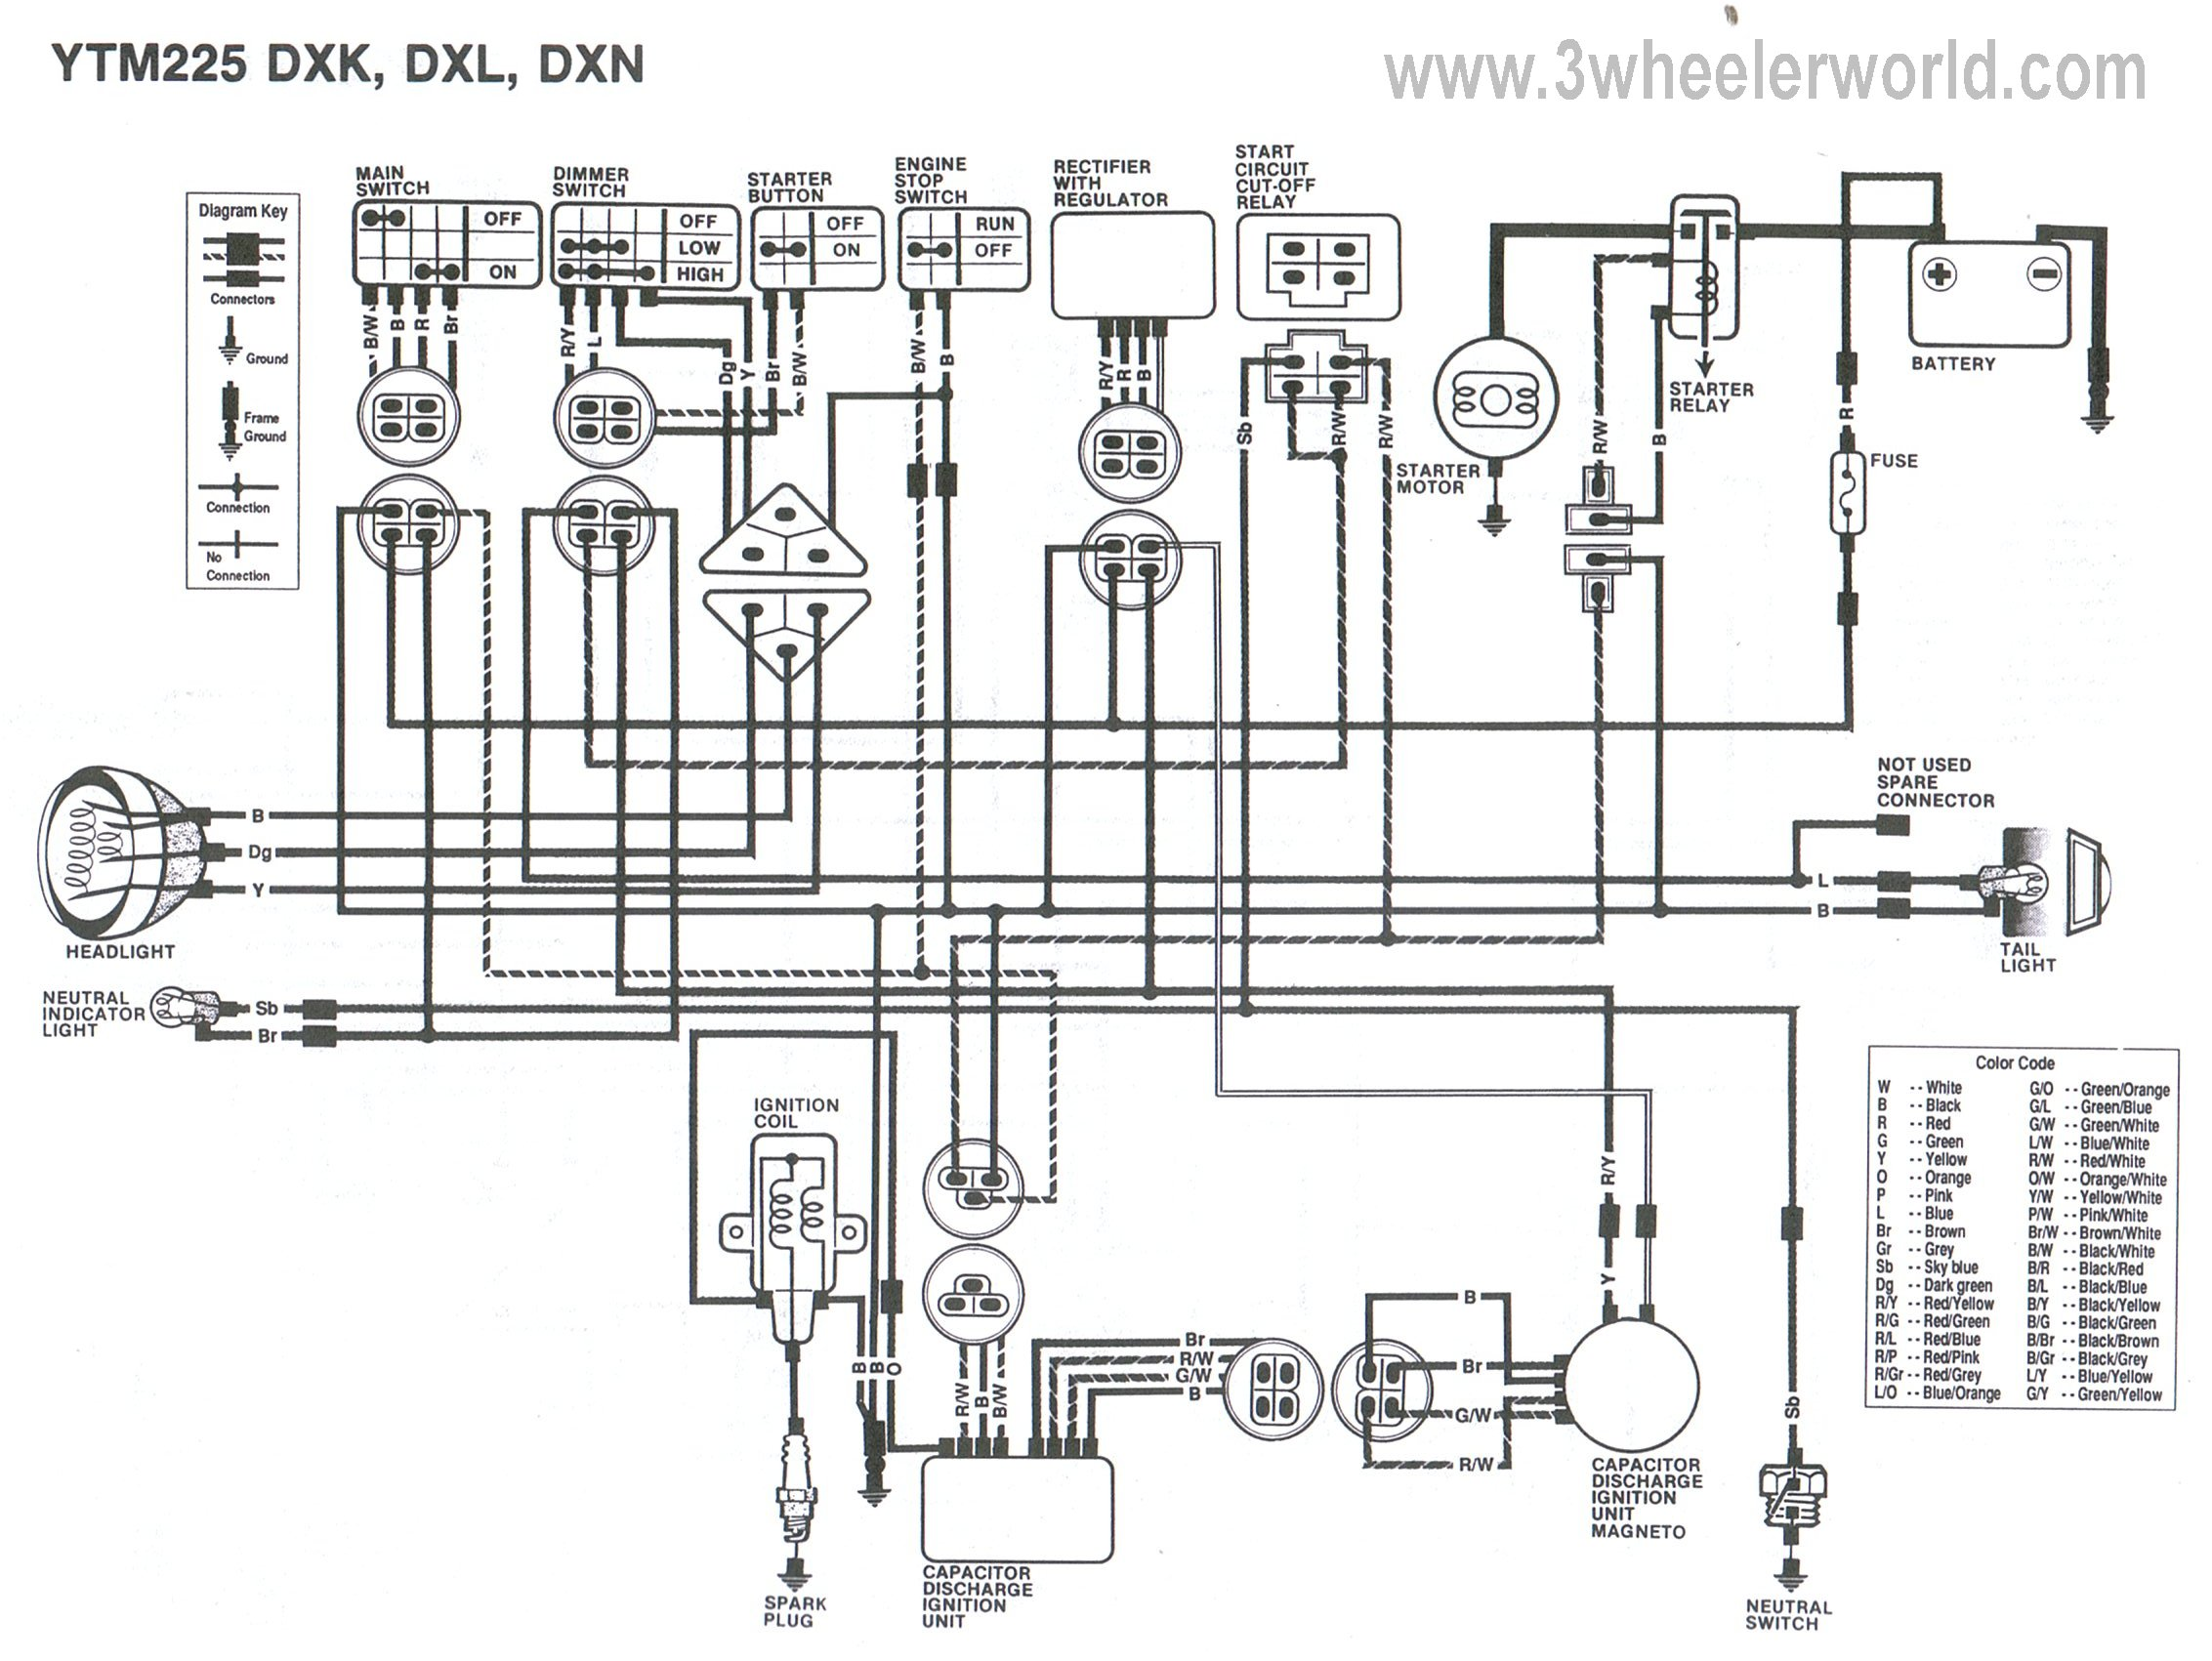 YTM225DXKDXLDXN 3 wheeler world tech help yamaha wiring diagrams yamaha ttr 225 wiring diagram at webbmarketing.co